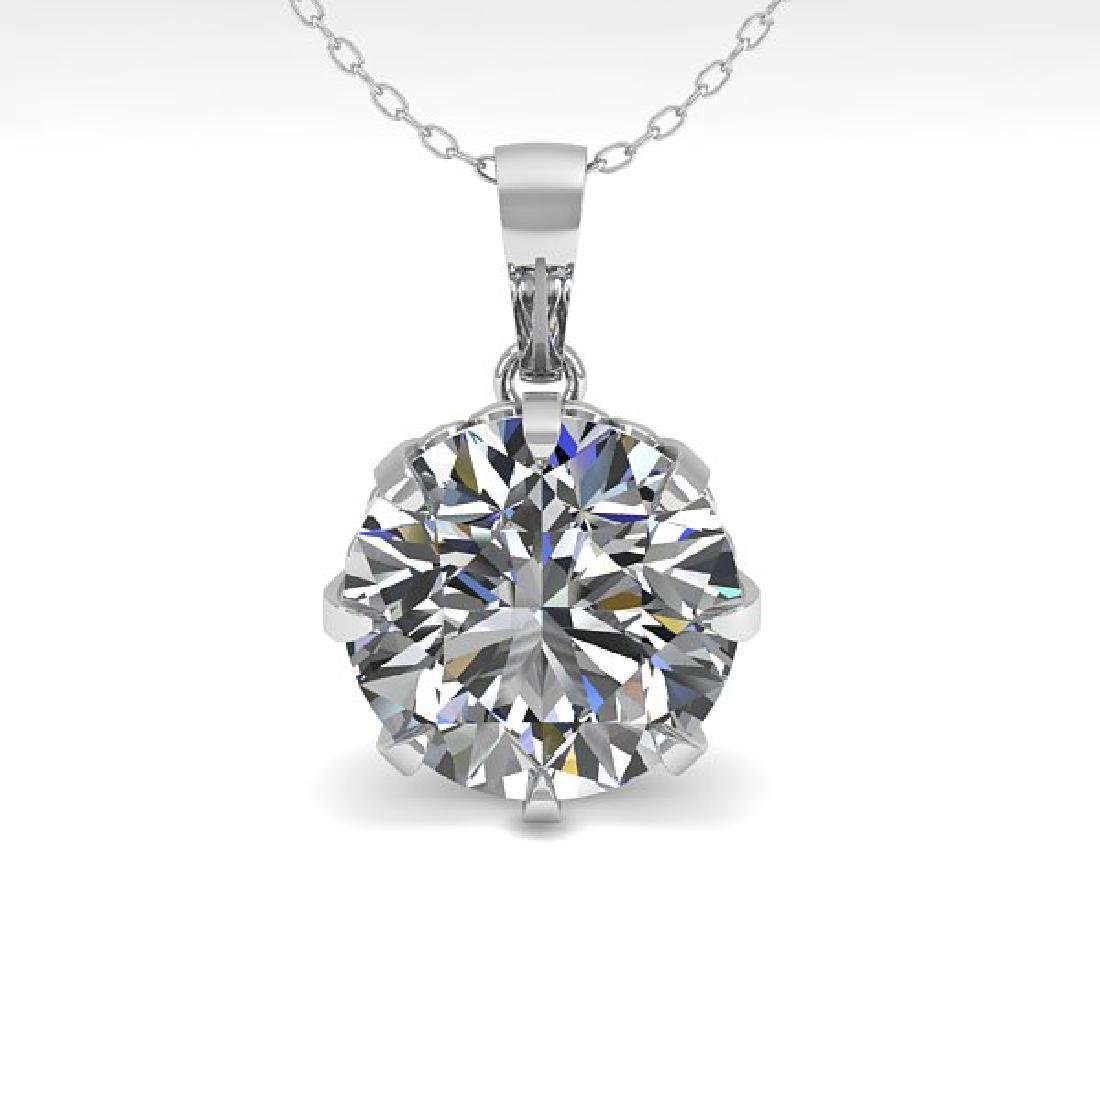 1 CTW VS/SI Diamond Solitaire Necklace 14K White Gold - 2